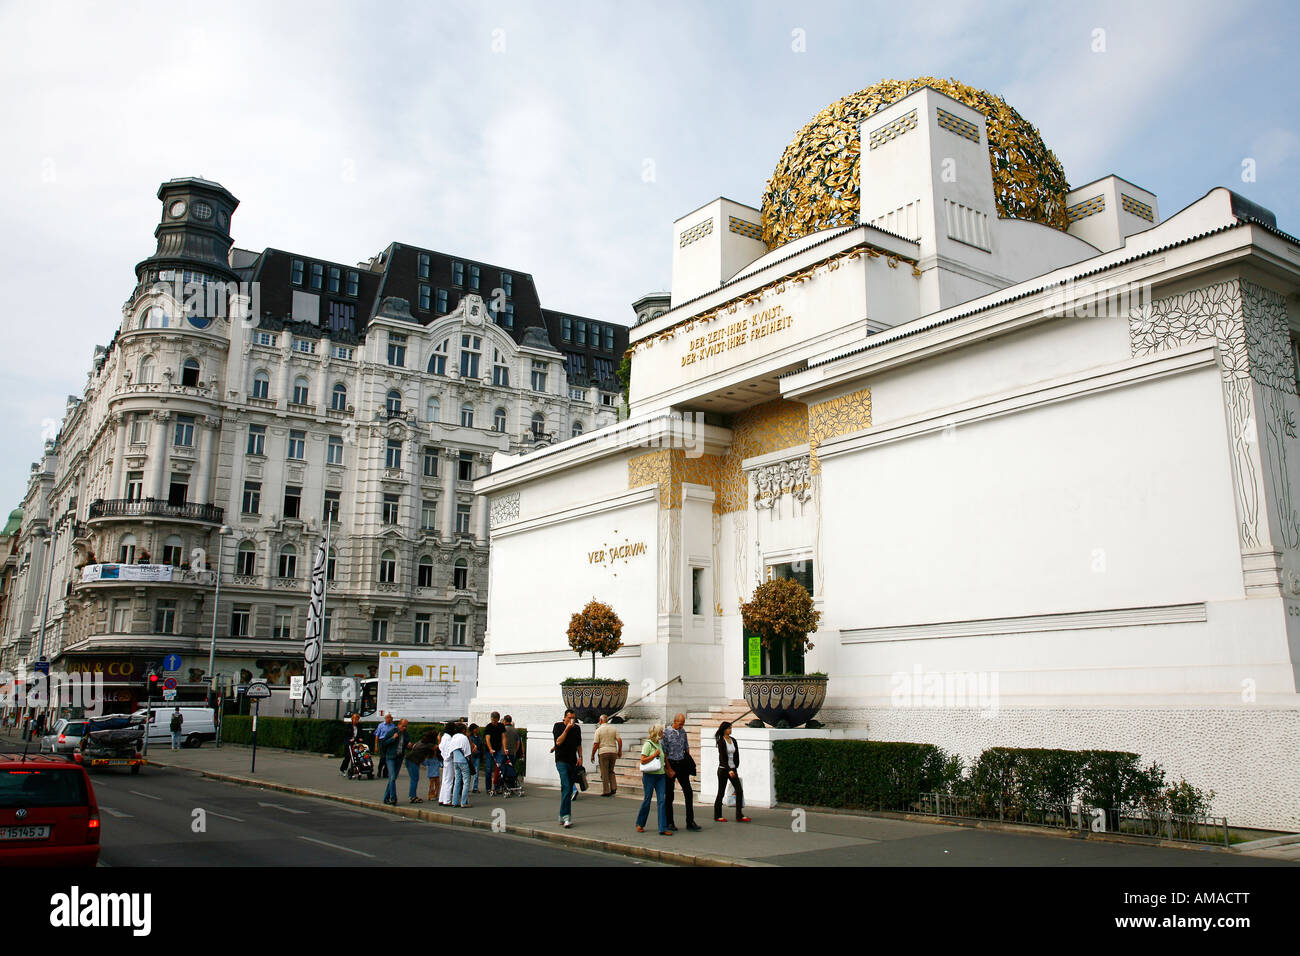 Aug 2008 - The Secession Building Art Museum Vienna Austria - Stock Image